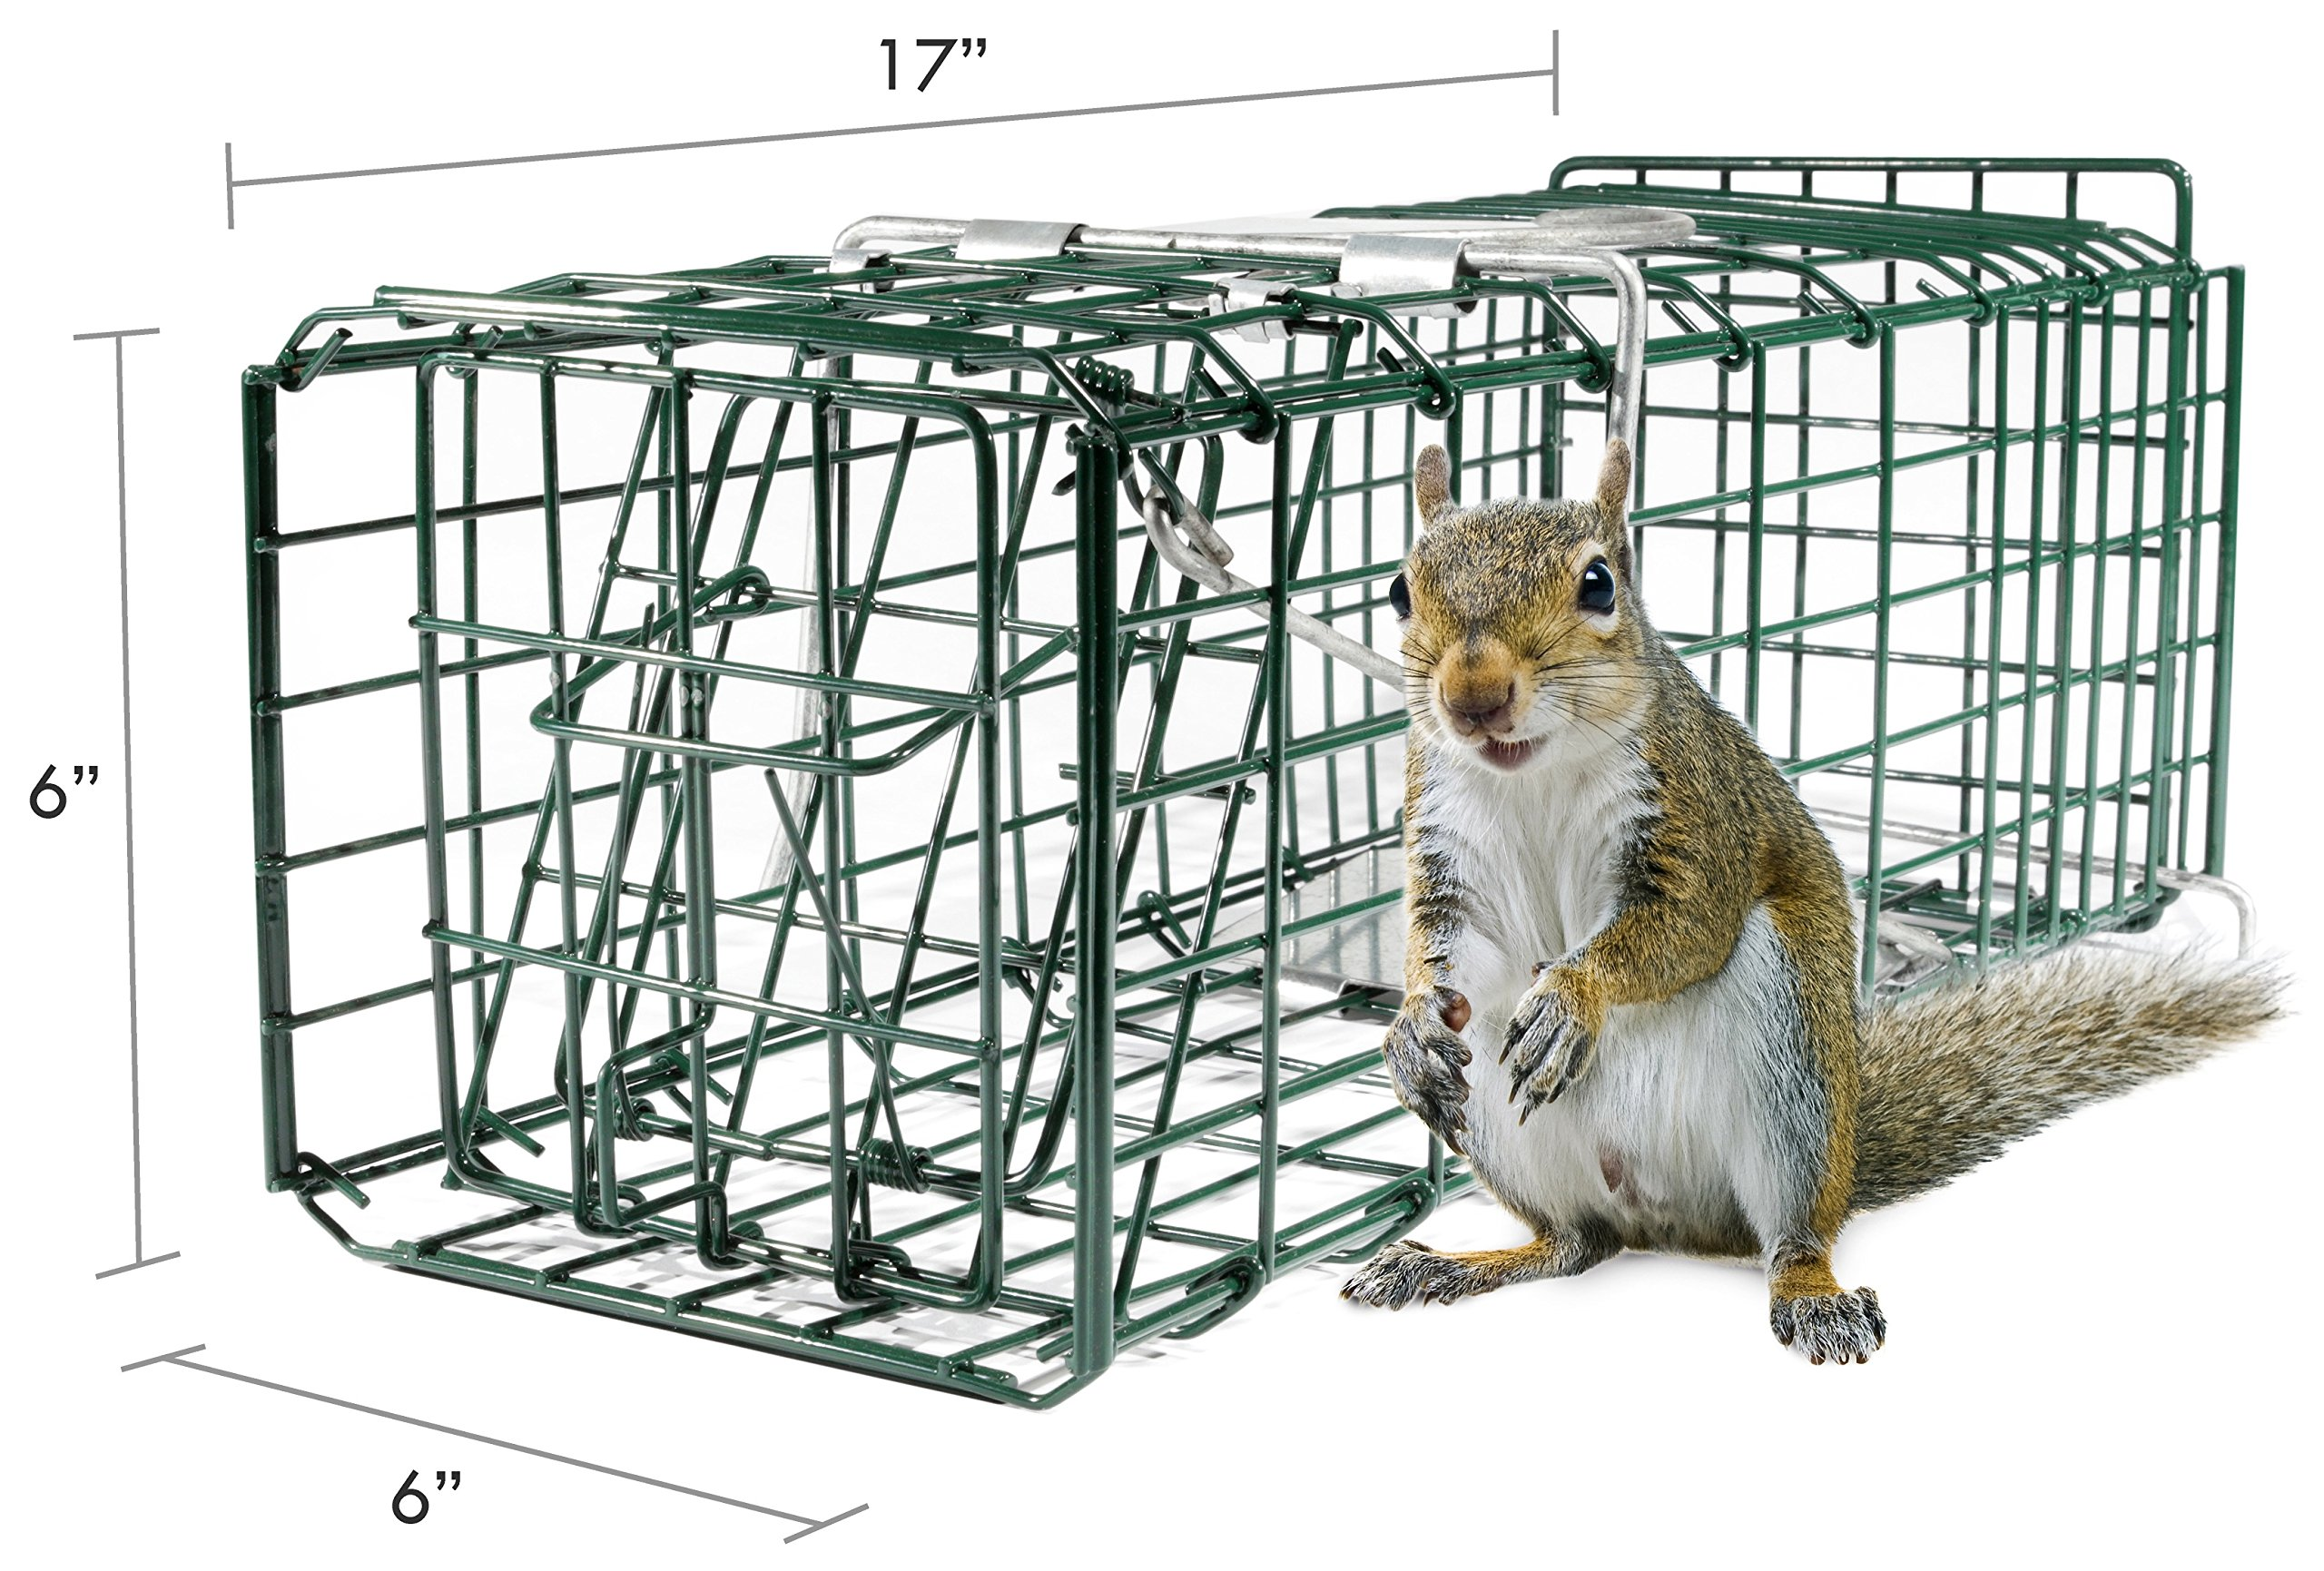 Parker 8 Live Animal Trap (17'' X 6'' X 6'') Catch & Release Rodent Cage - Highly Efficient Professional Humane Solution for Rabbit, Squirrel, Mole, Gopher, Skunk - Steel